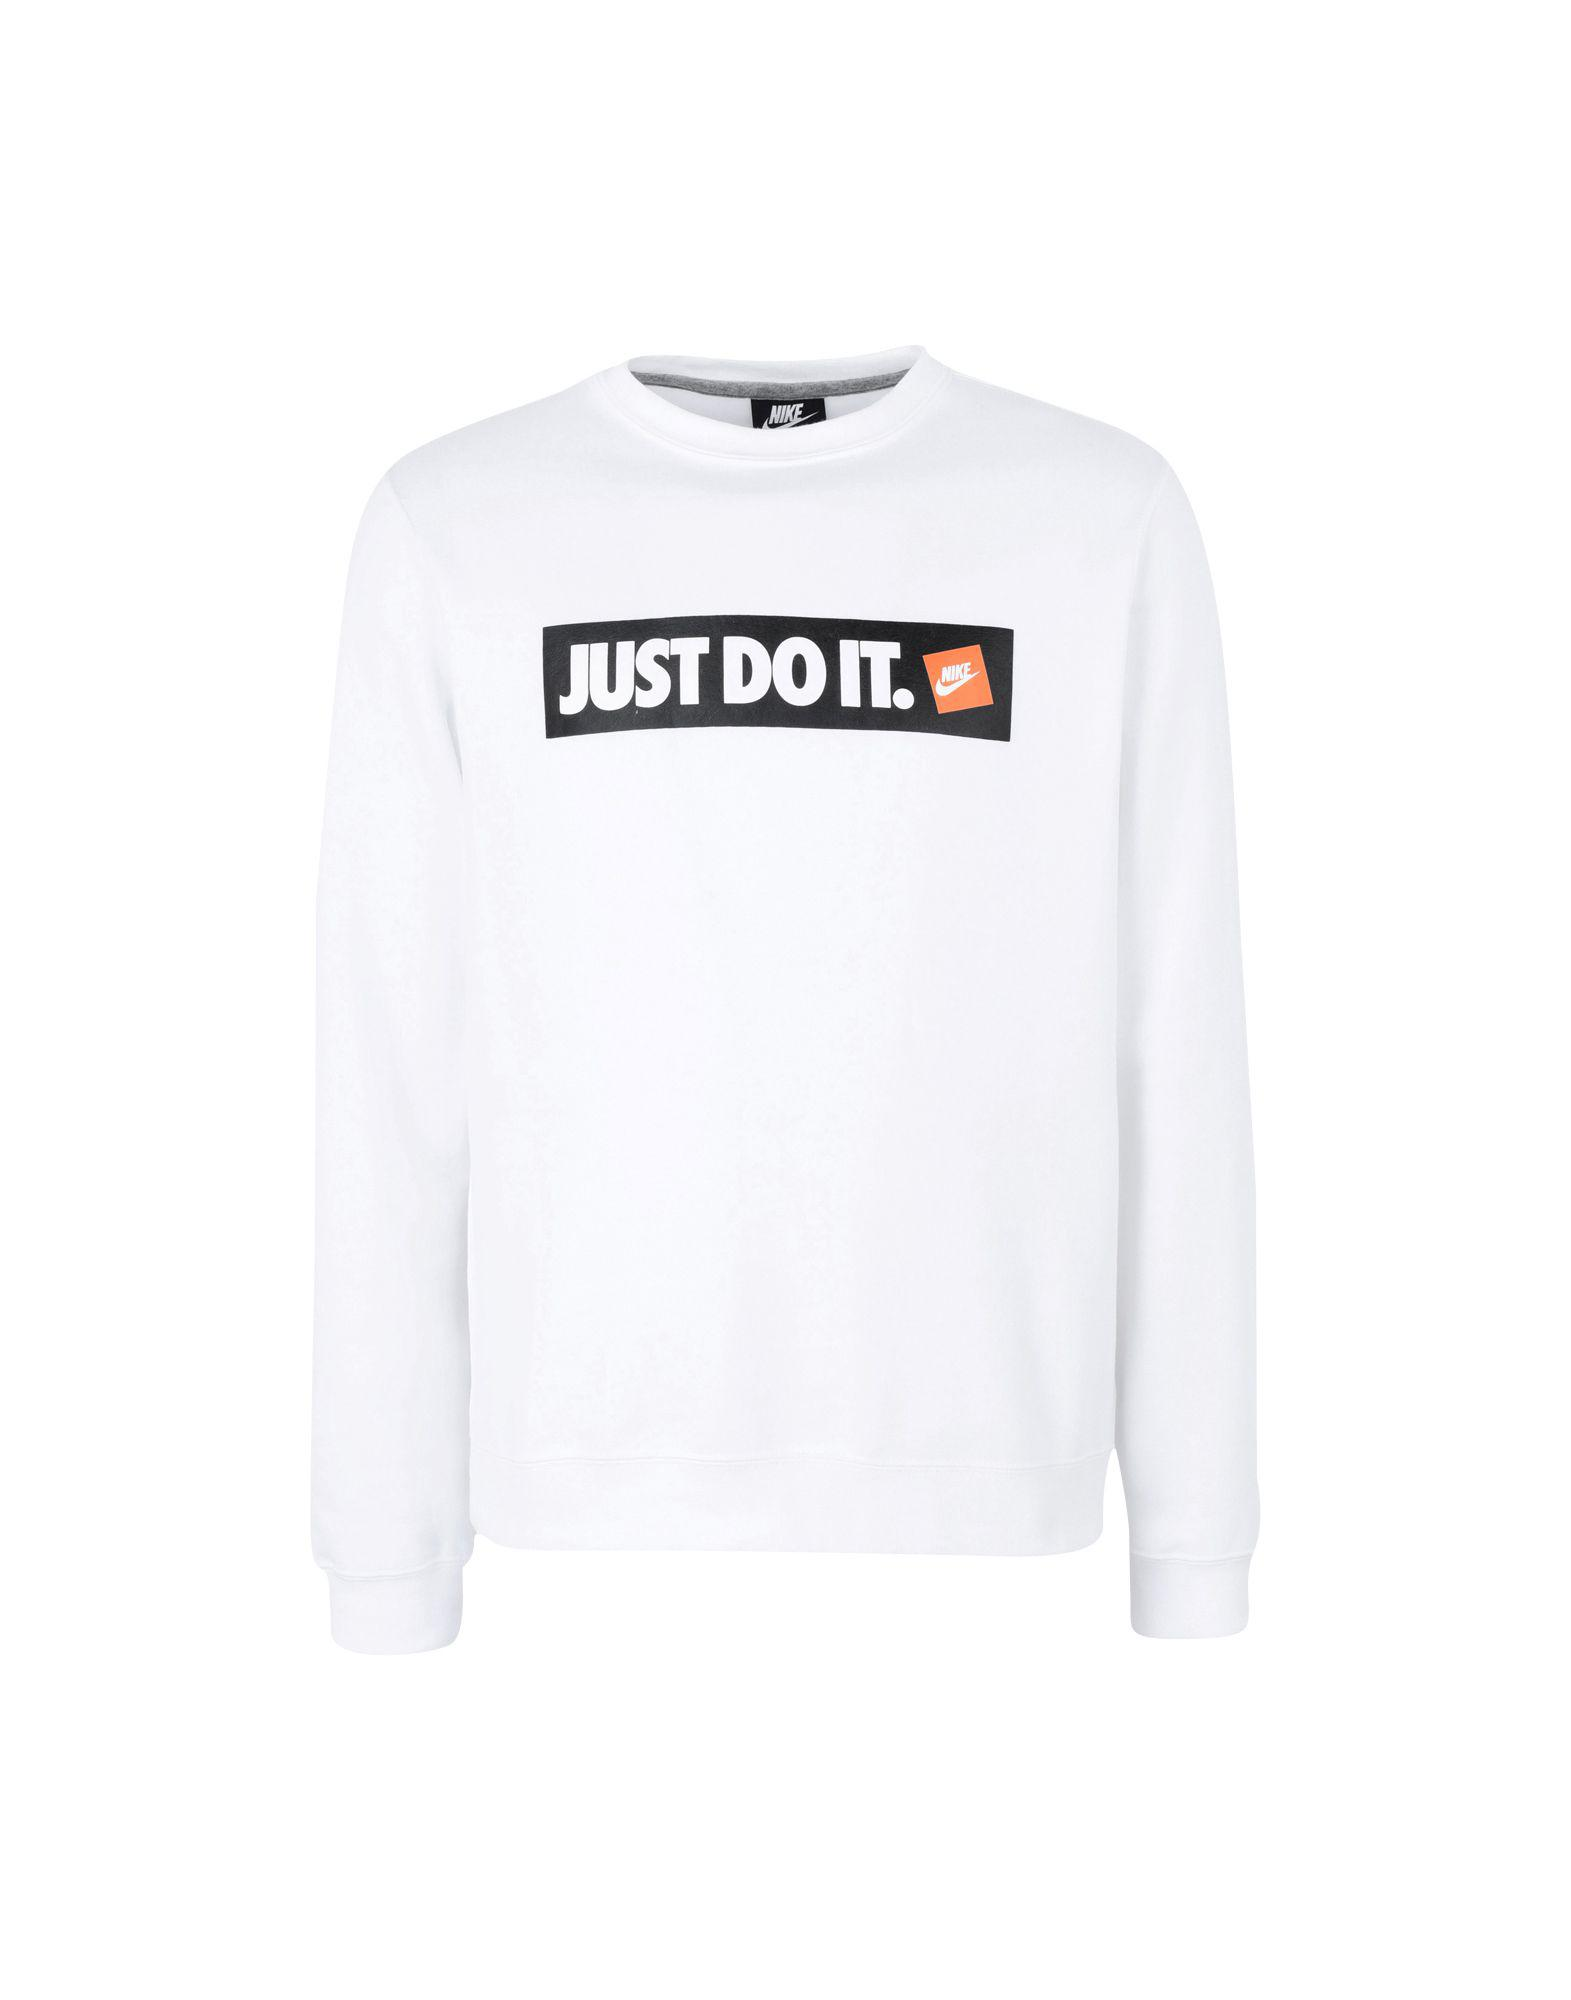 ab6c6831 Nike Just Do It Box Logo Sweatshirt In White 928699-100 in White for Men -  Save 51% - Lyst